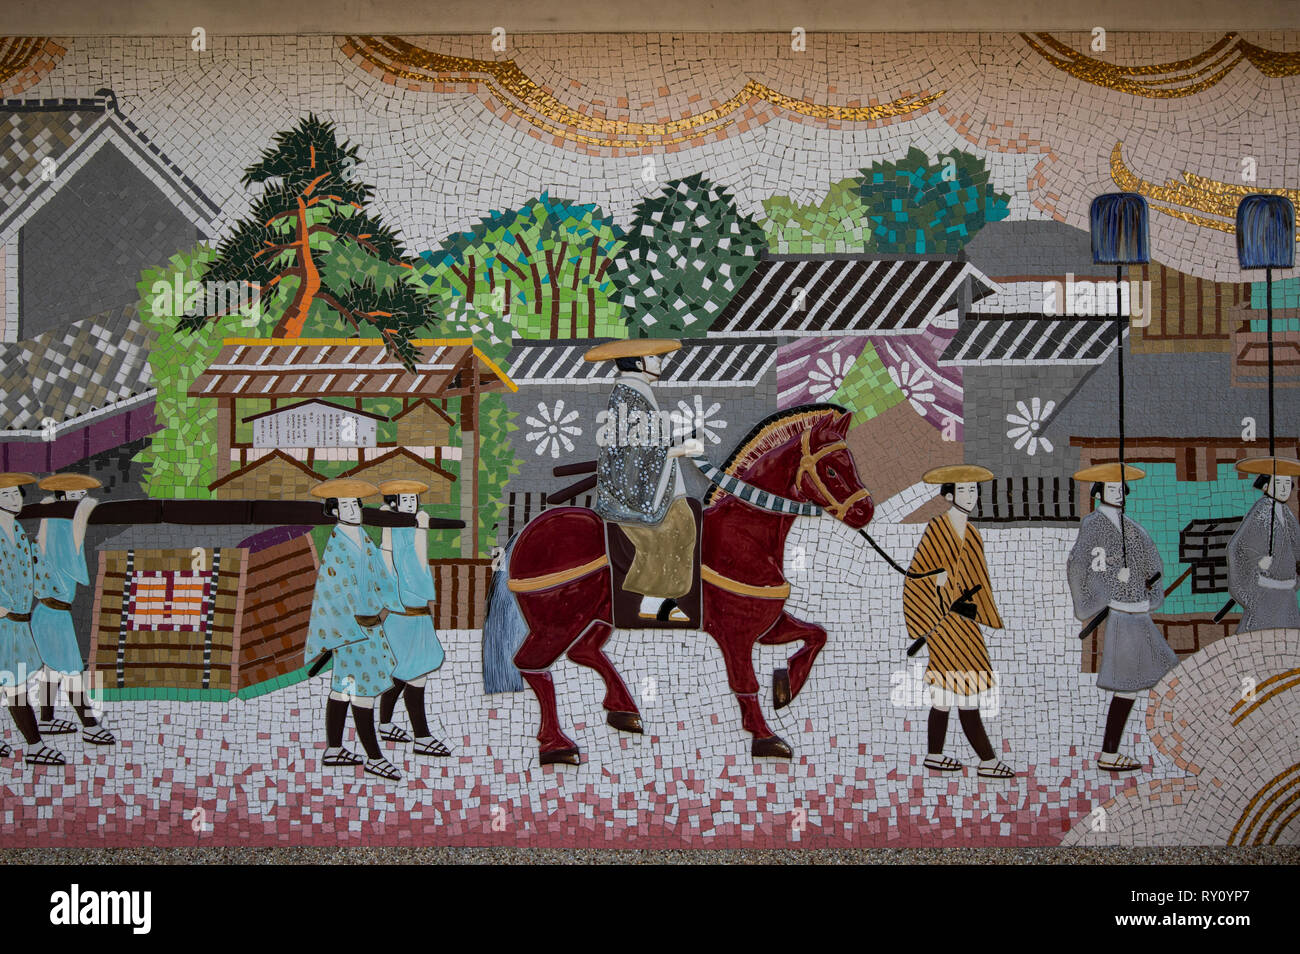 Nakasendo Mural - The Gokaido highways were established by the Tokugawa shogunate as official routes for daimyo feudal lords and their retainers to tr - Stock Image